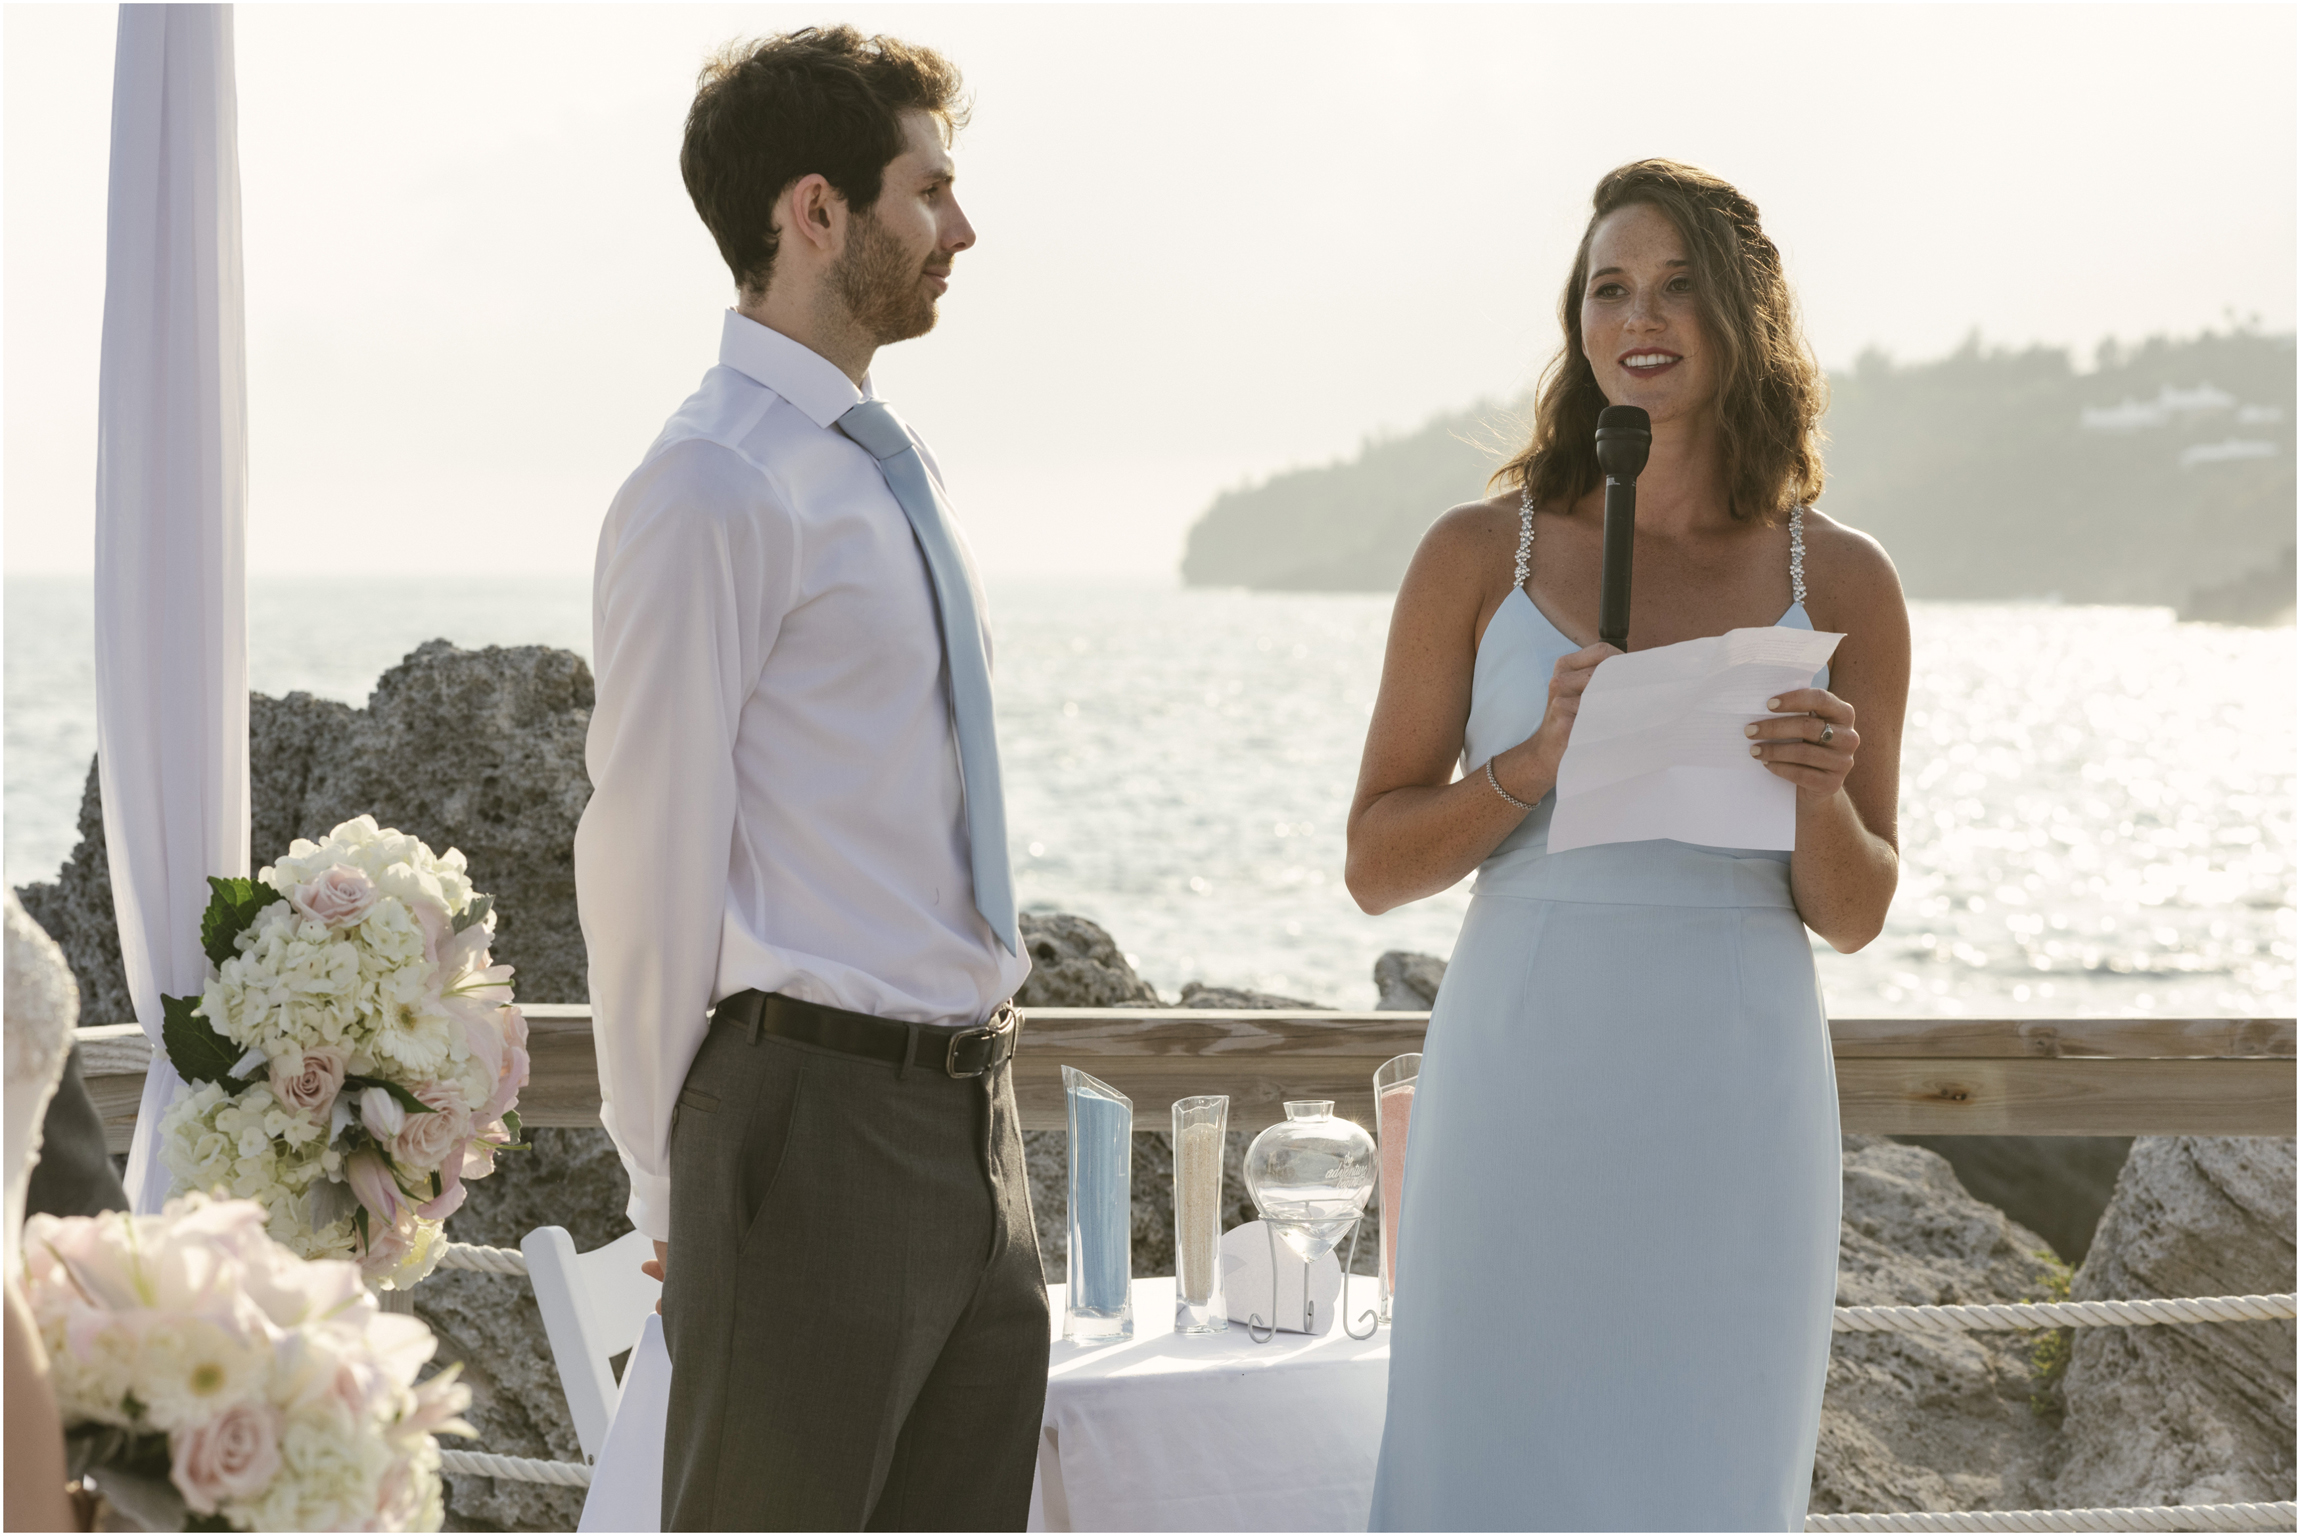 ©FianderFoto_Caribbean_Wedding_Photographer_The Reefs_Bermuda_Lauren_Erik_056.jpg